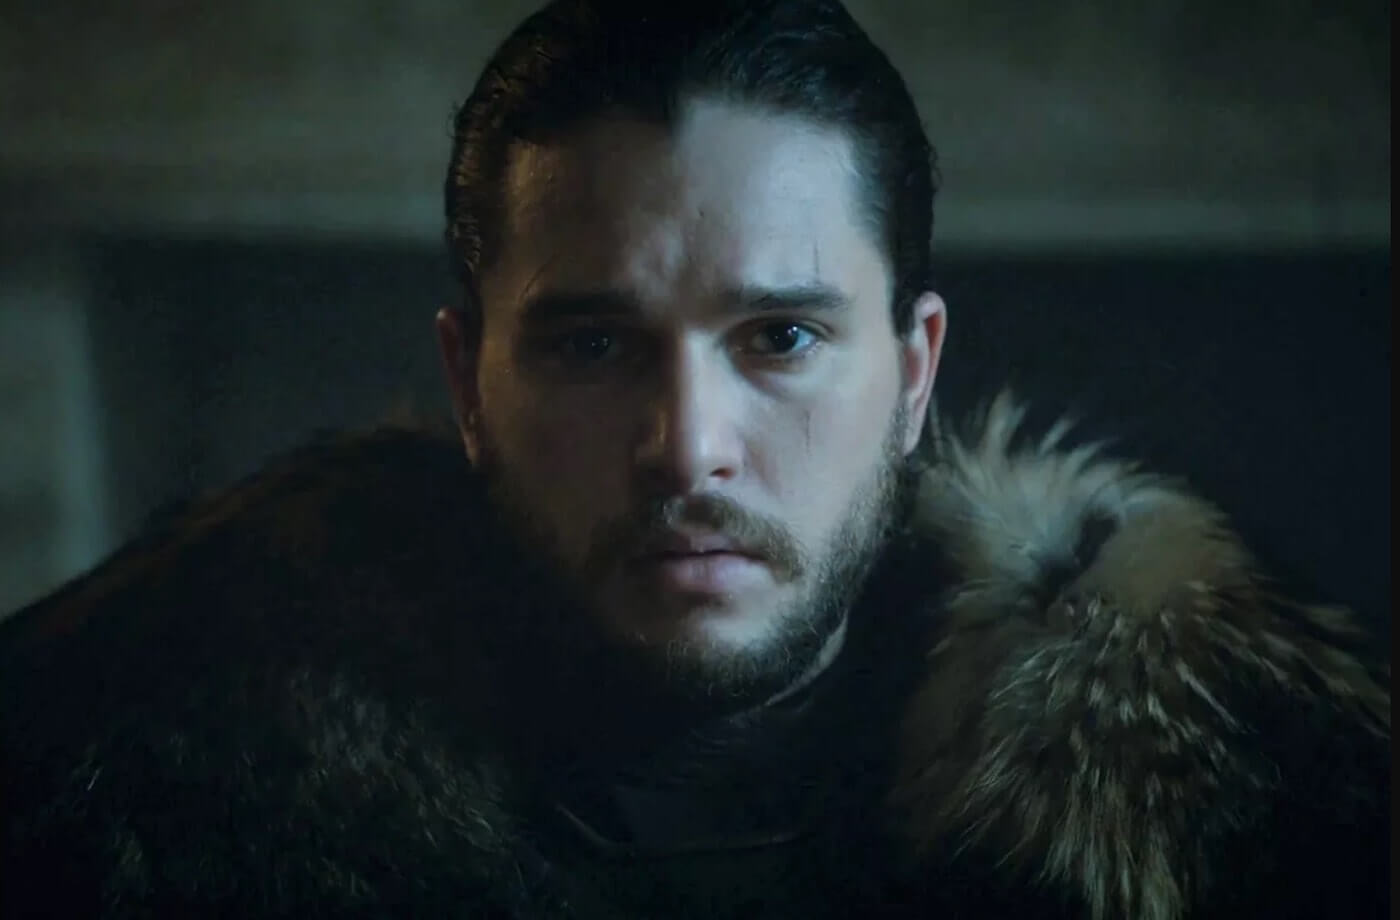 How to Create a TV Show Pitch Bible that Sells - Jon Snow